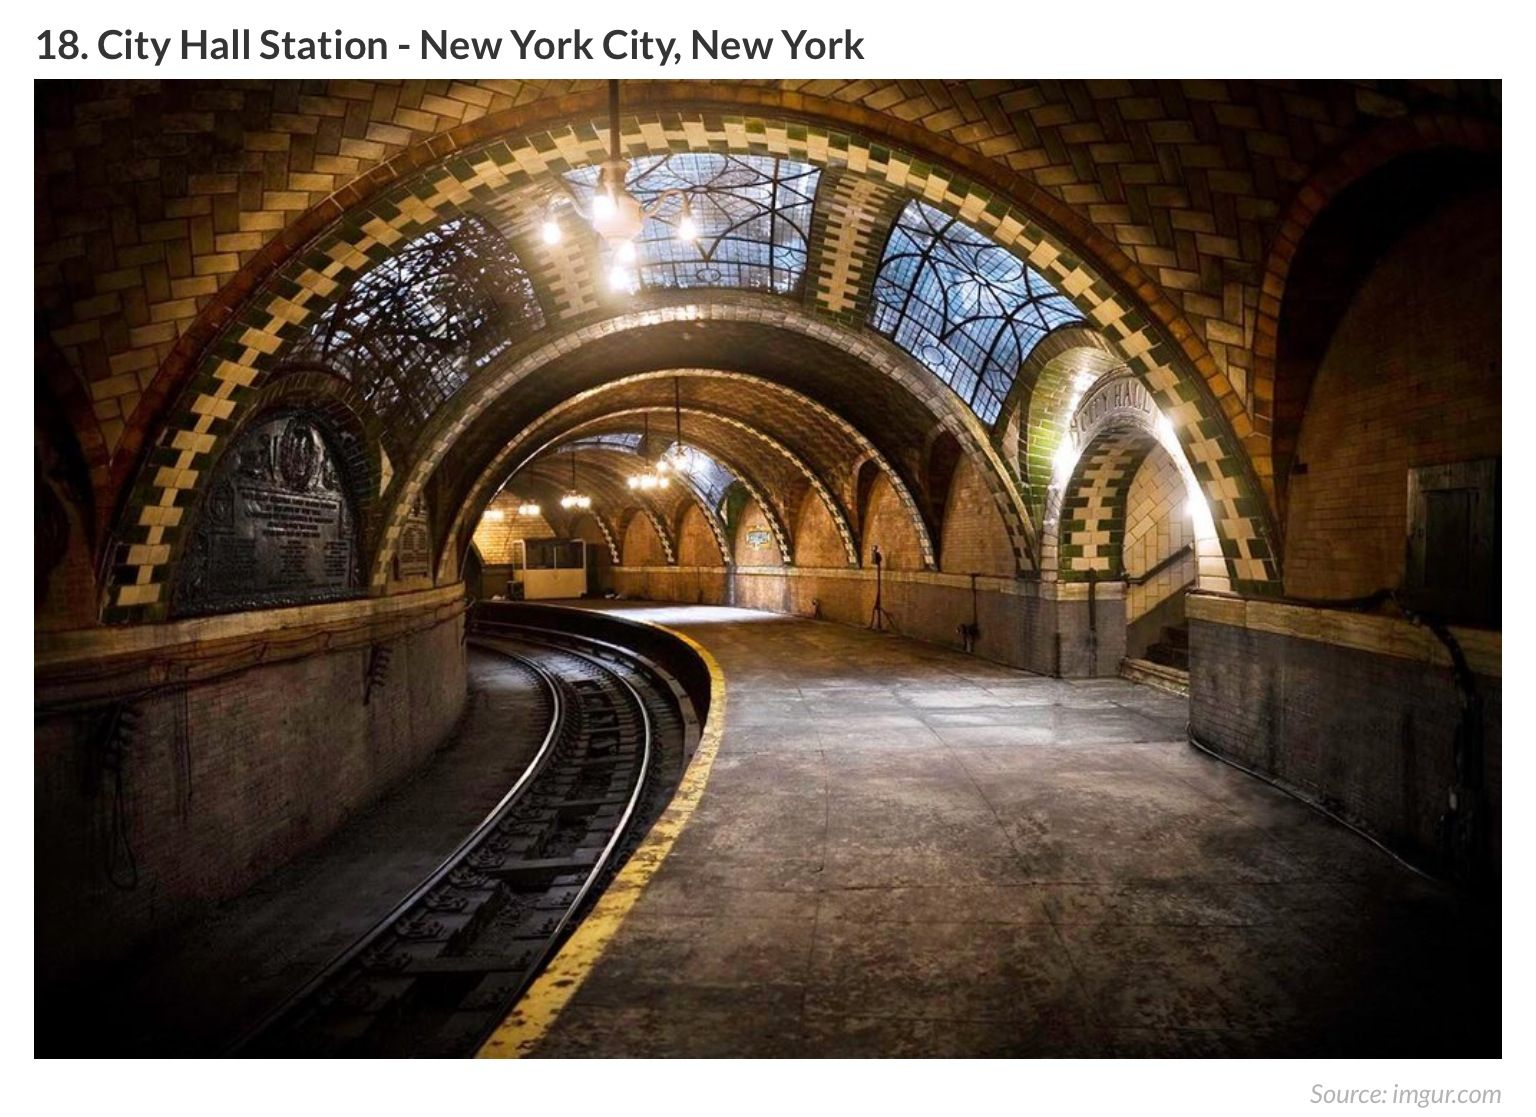 Rehab addict 1904 mansion -  Photo By John Paul Palescandolo The City Hall Subway Station Opened In October 1904 And Was Part Of The First Line Of The